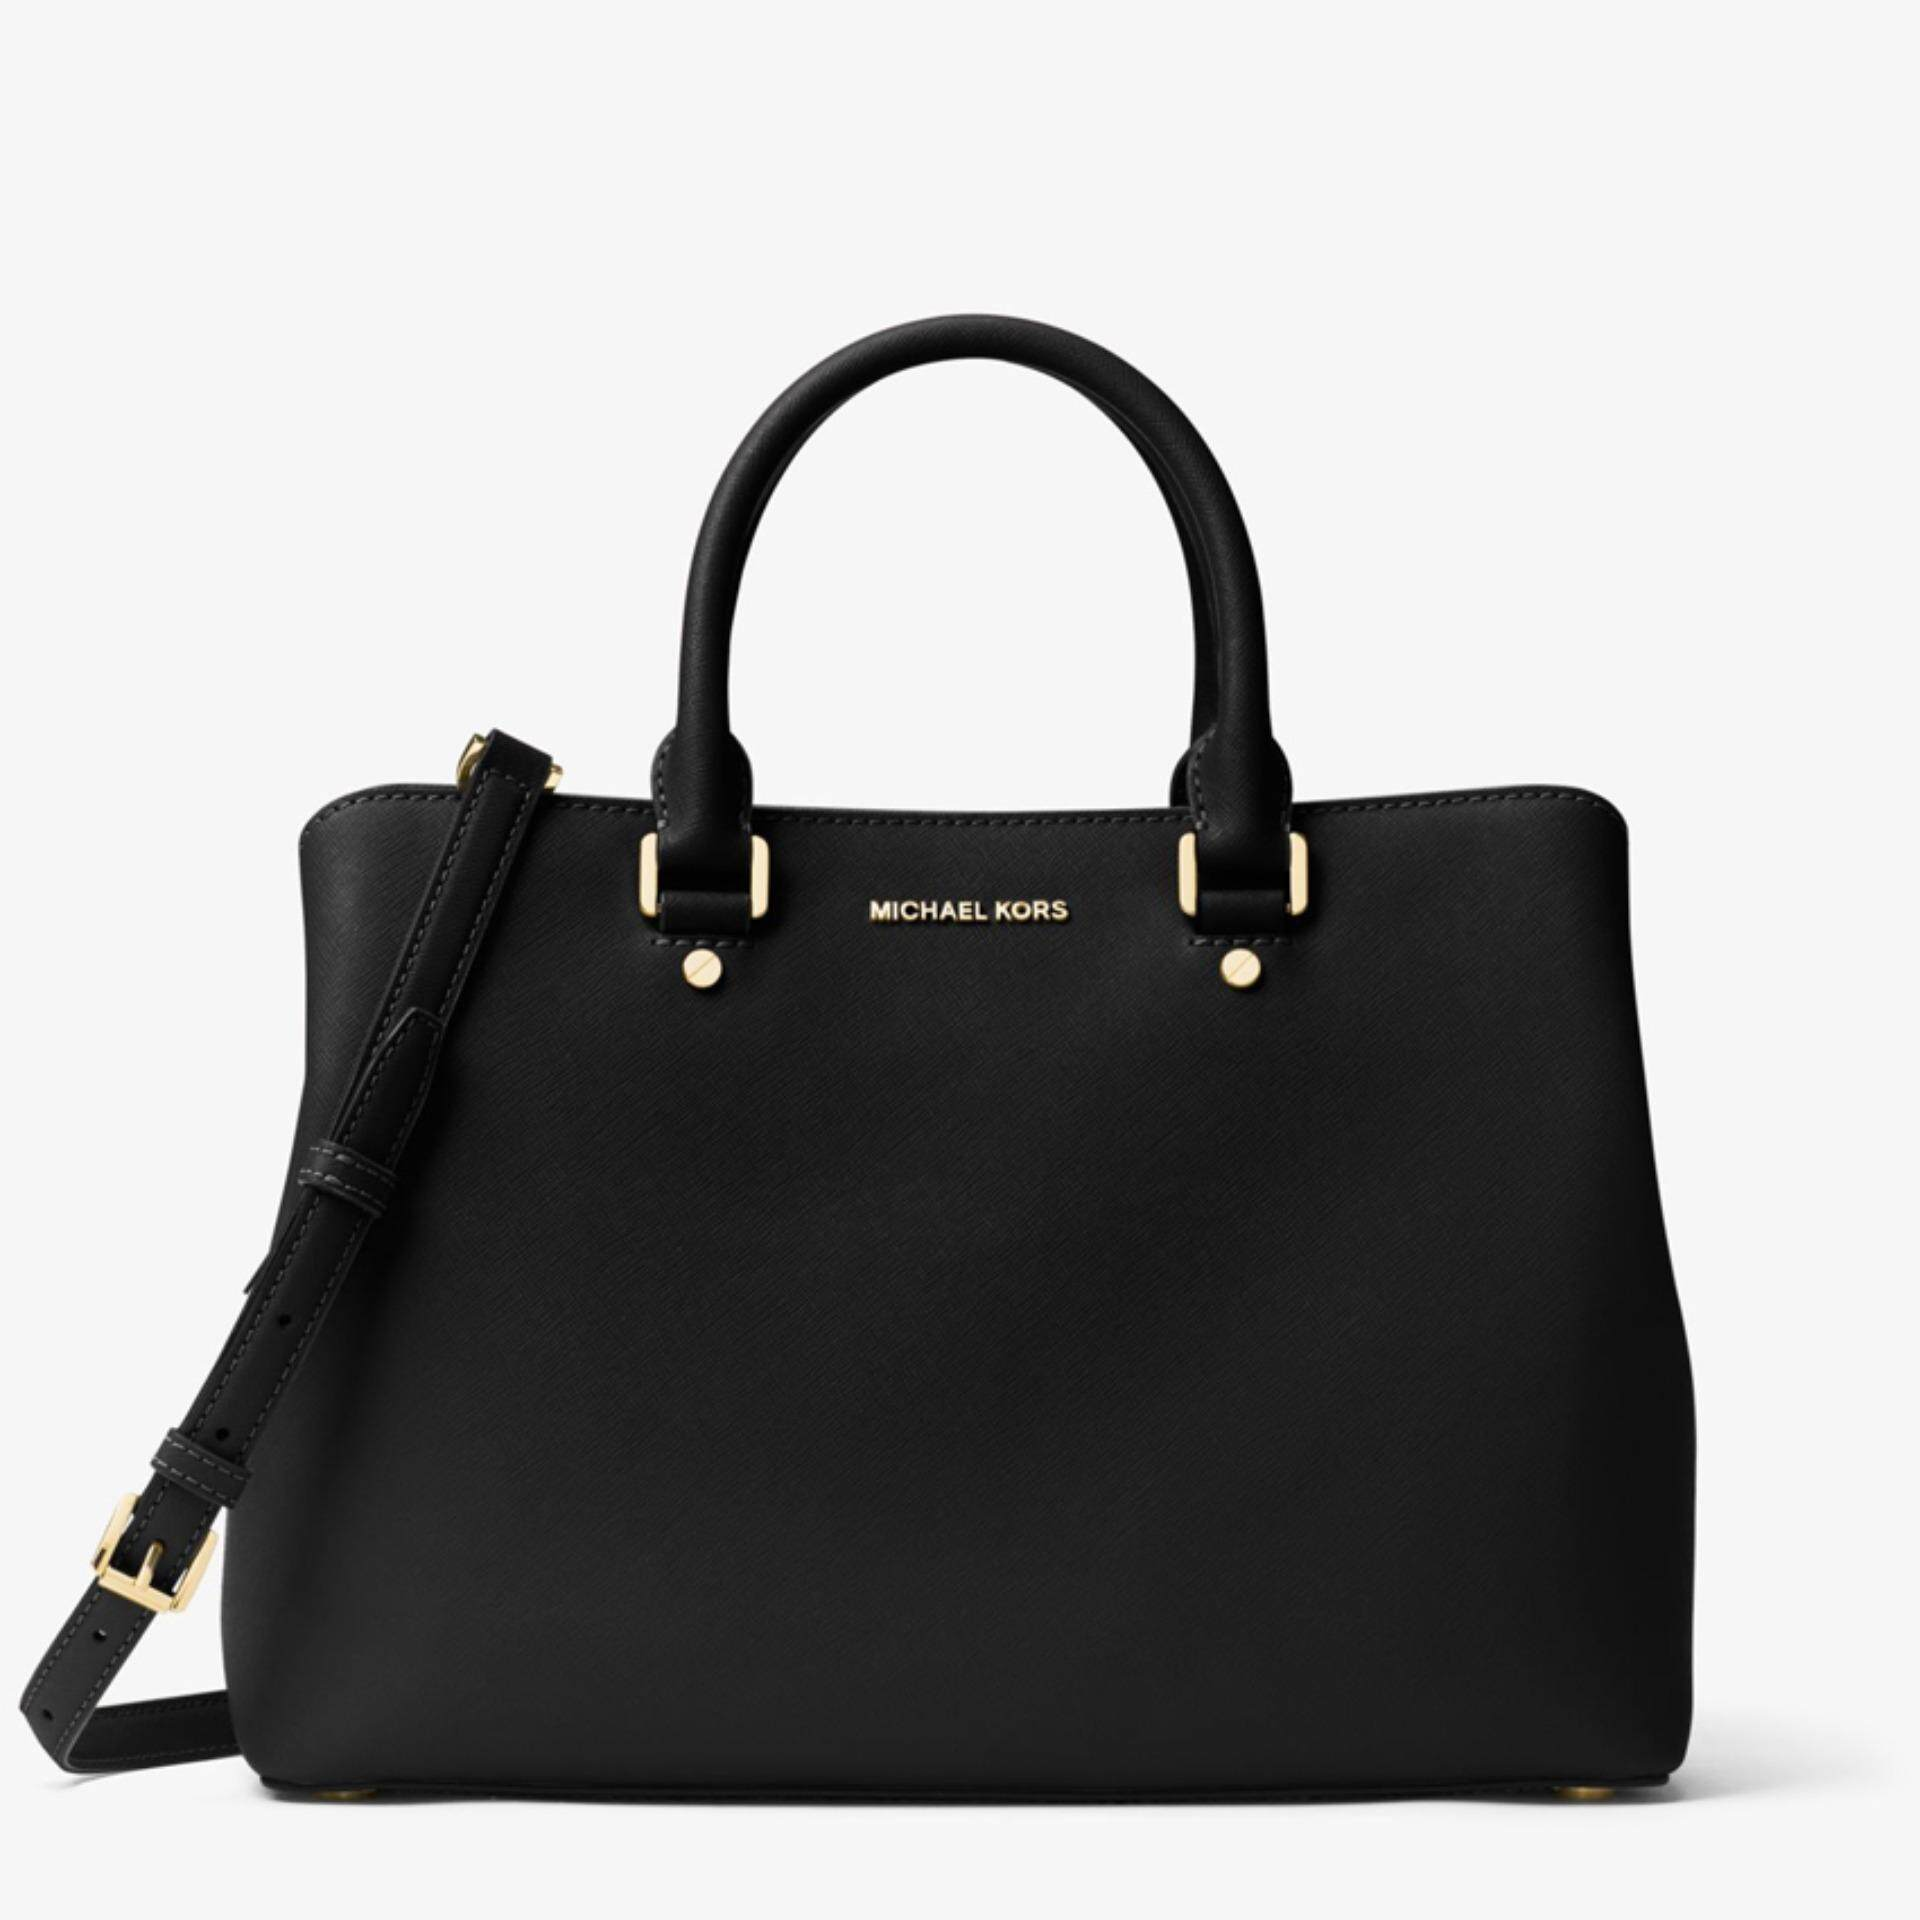 d6efe135b7c0 Michael Kors Bags for the Best Price in Malaysia